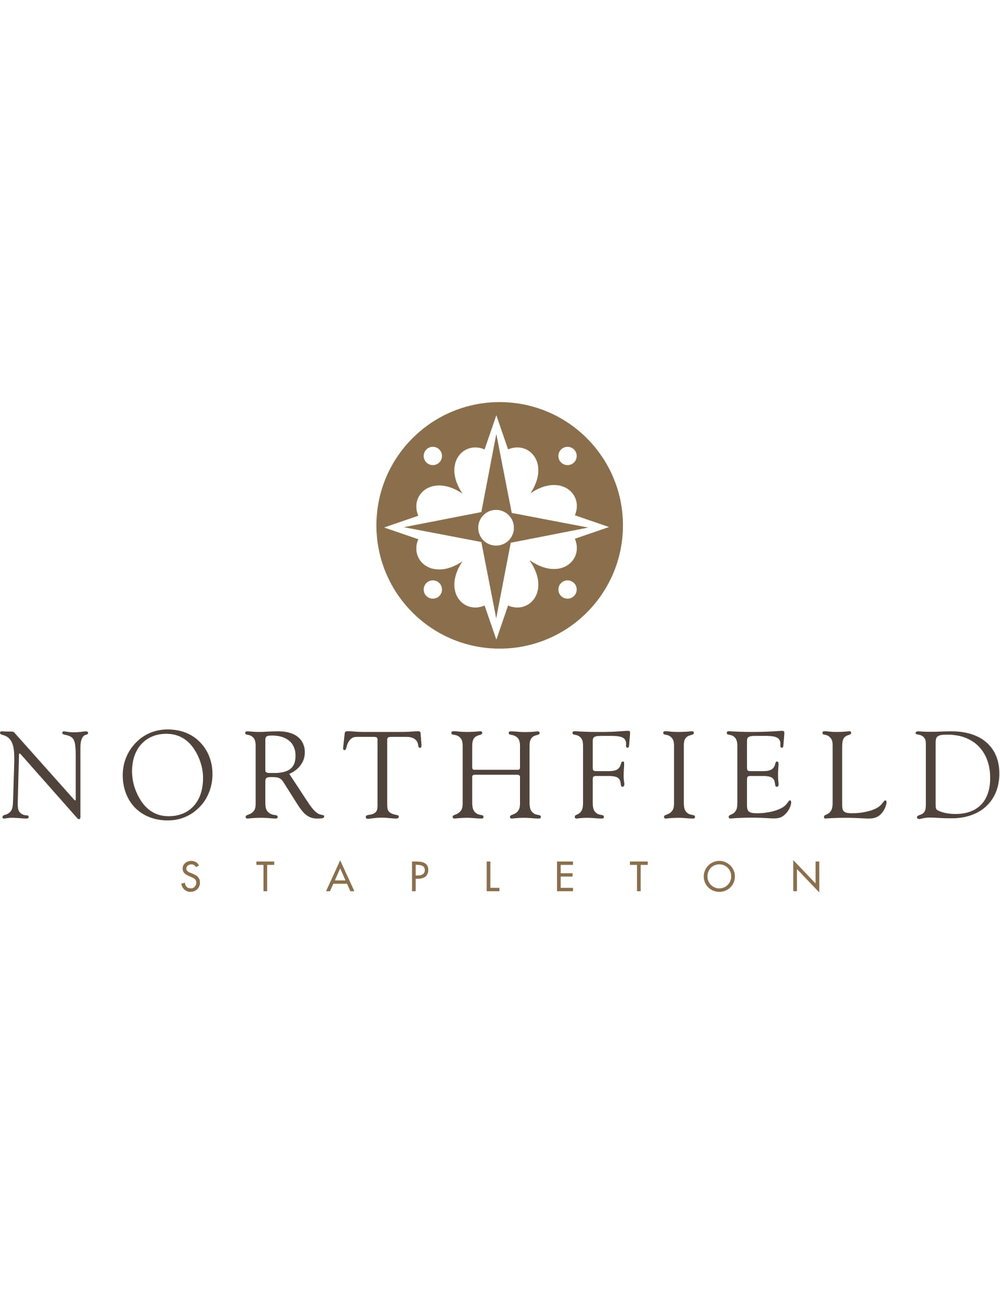 Northfield_logo-1.jpg